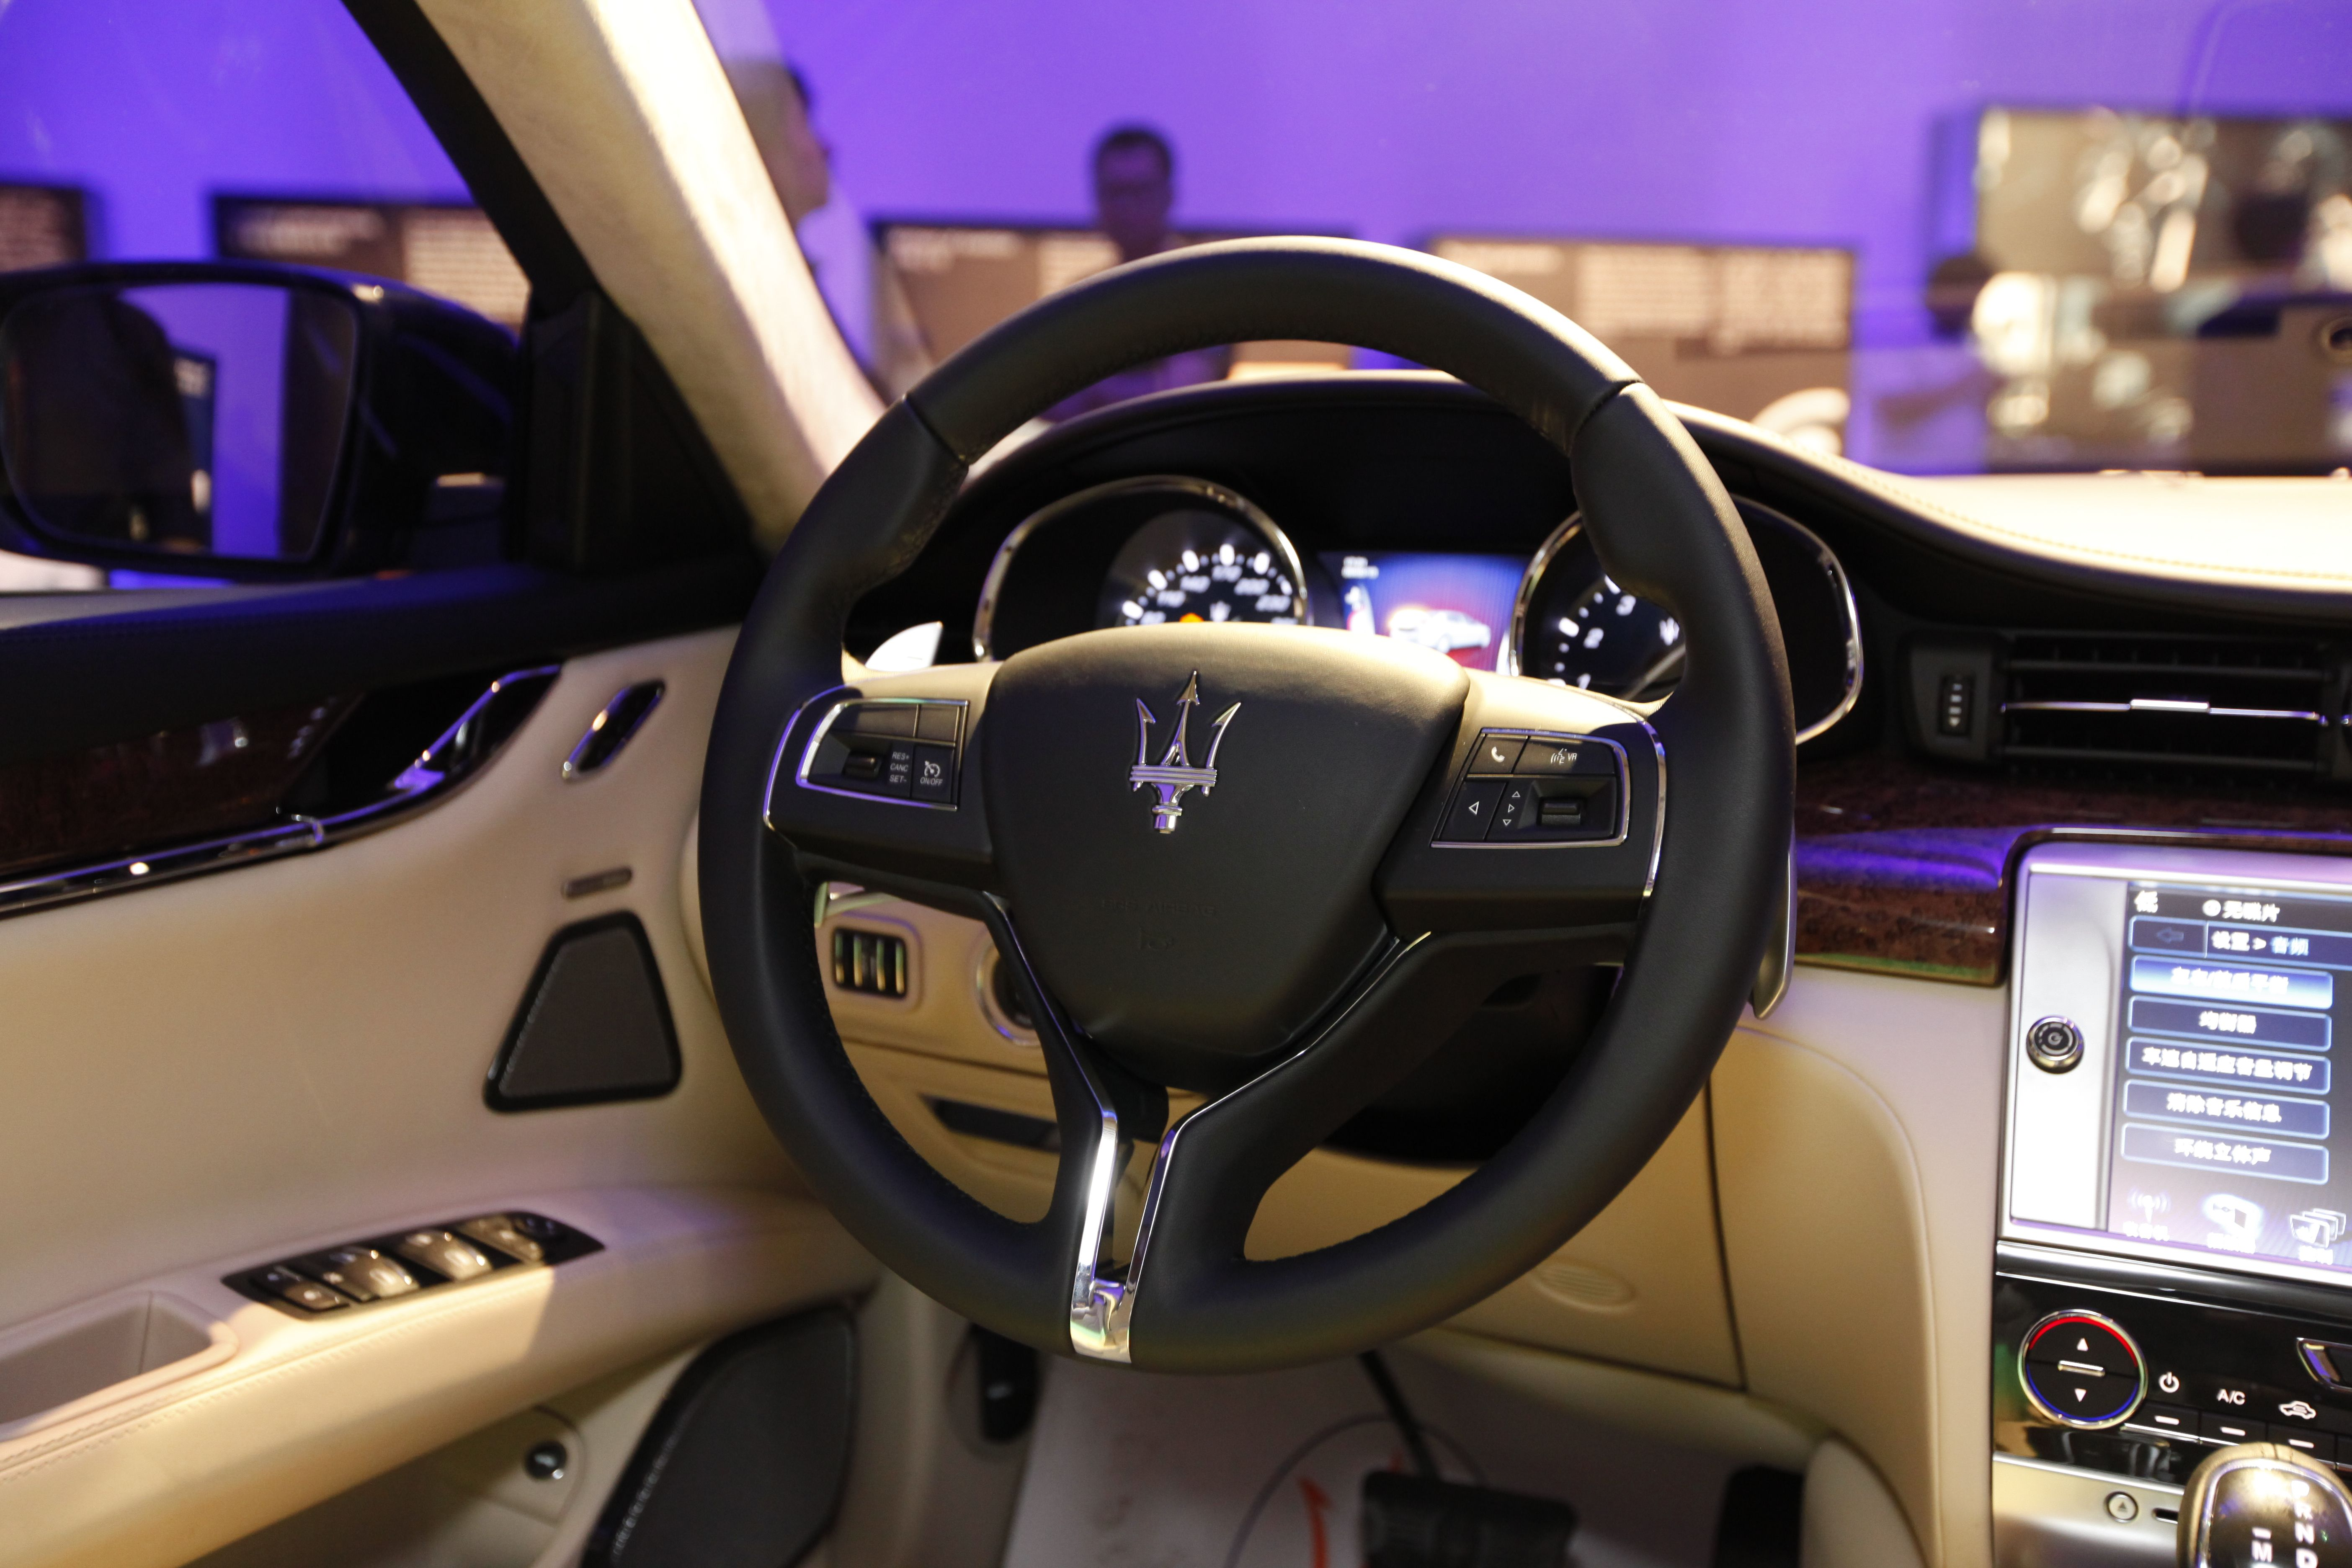 Watch Maserati x Bowers Wilkins: Seven Notes video